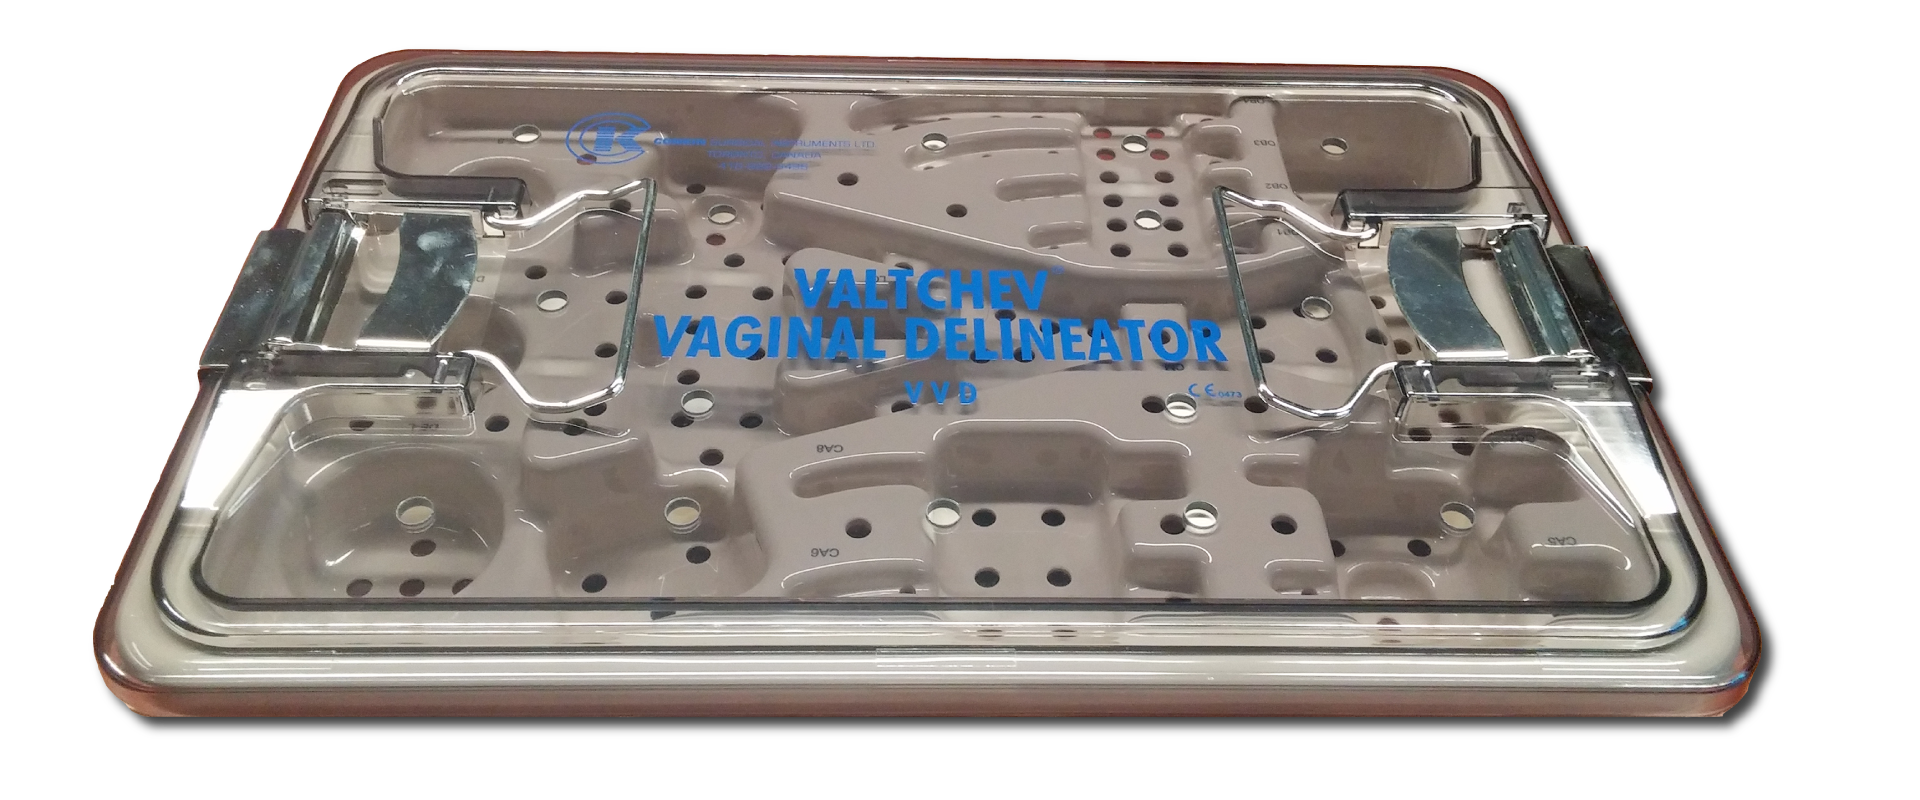 Valtchev Vaginal Delineator Gynecology Instrument Sterilization Tray